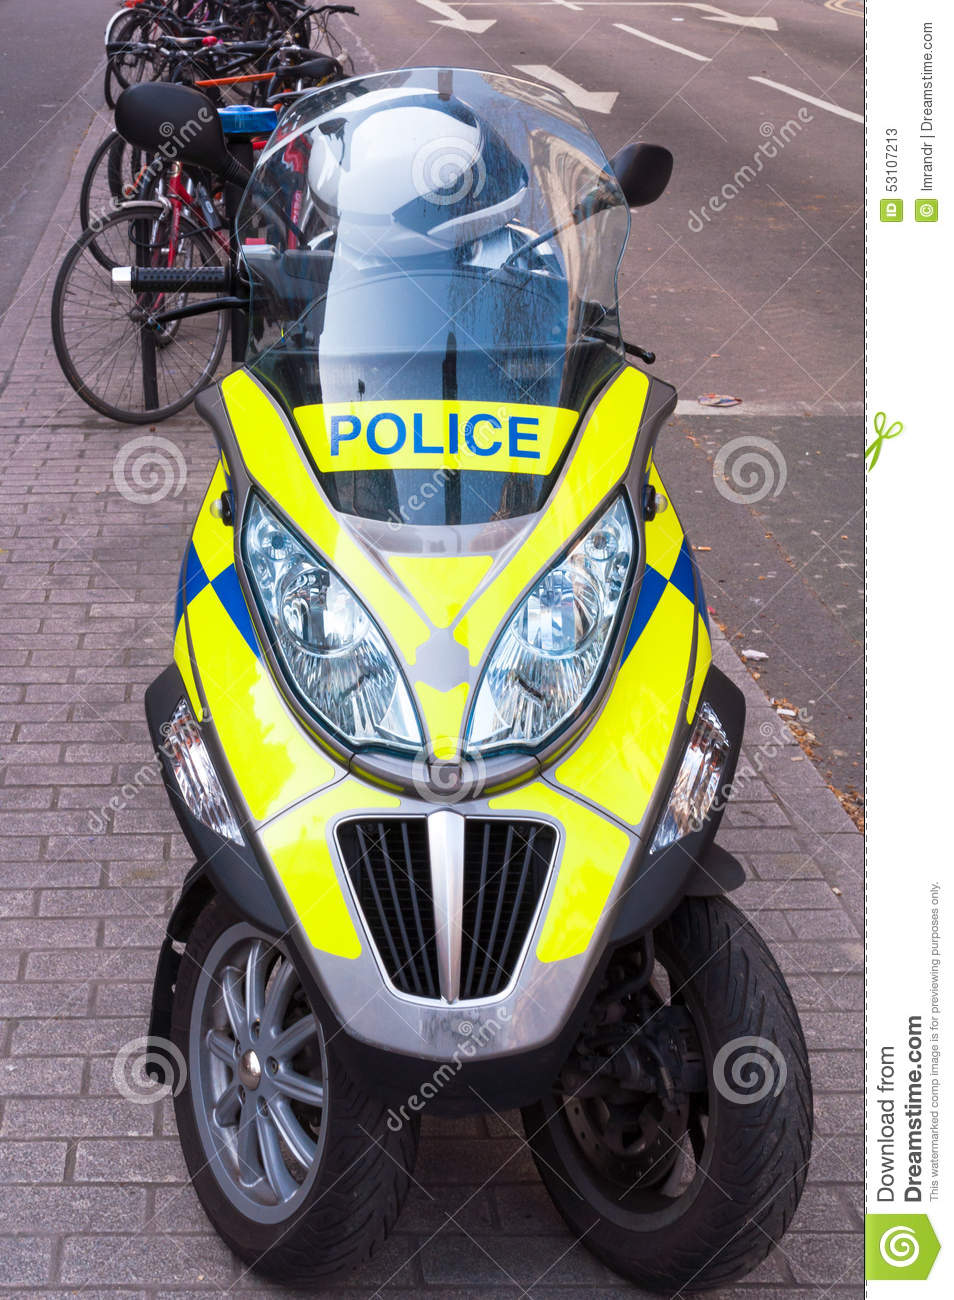 British police car clipart png transparent UK Police Vehicle Parked On A Path In London Stock Photo - Image ... png transparent